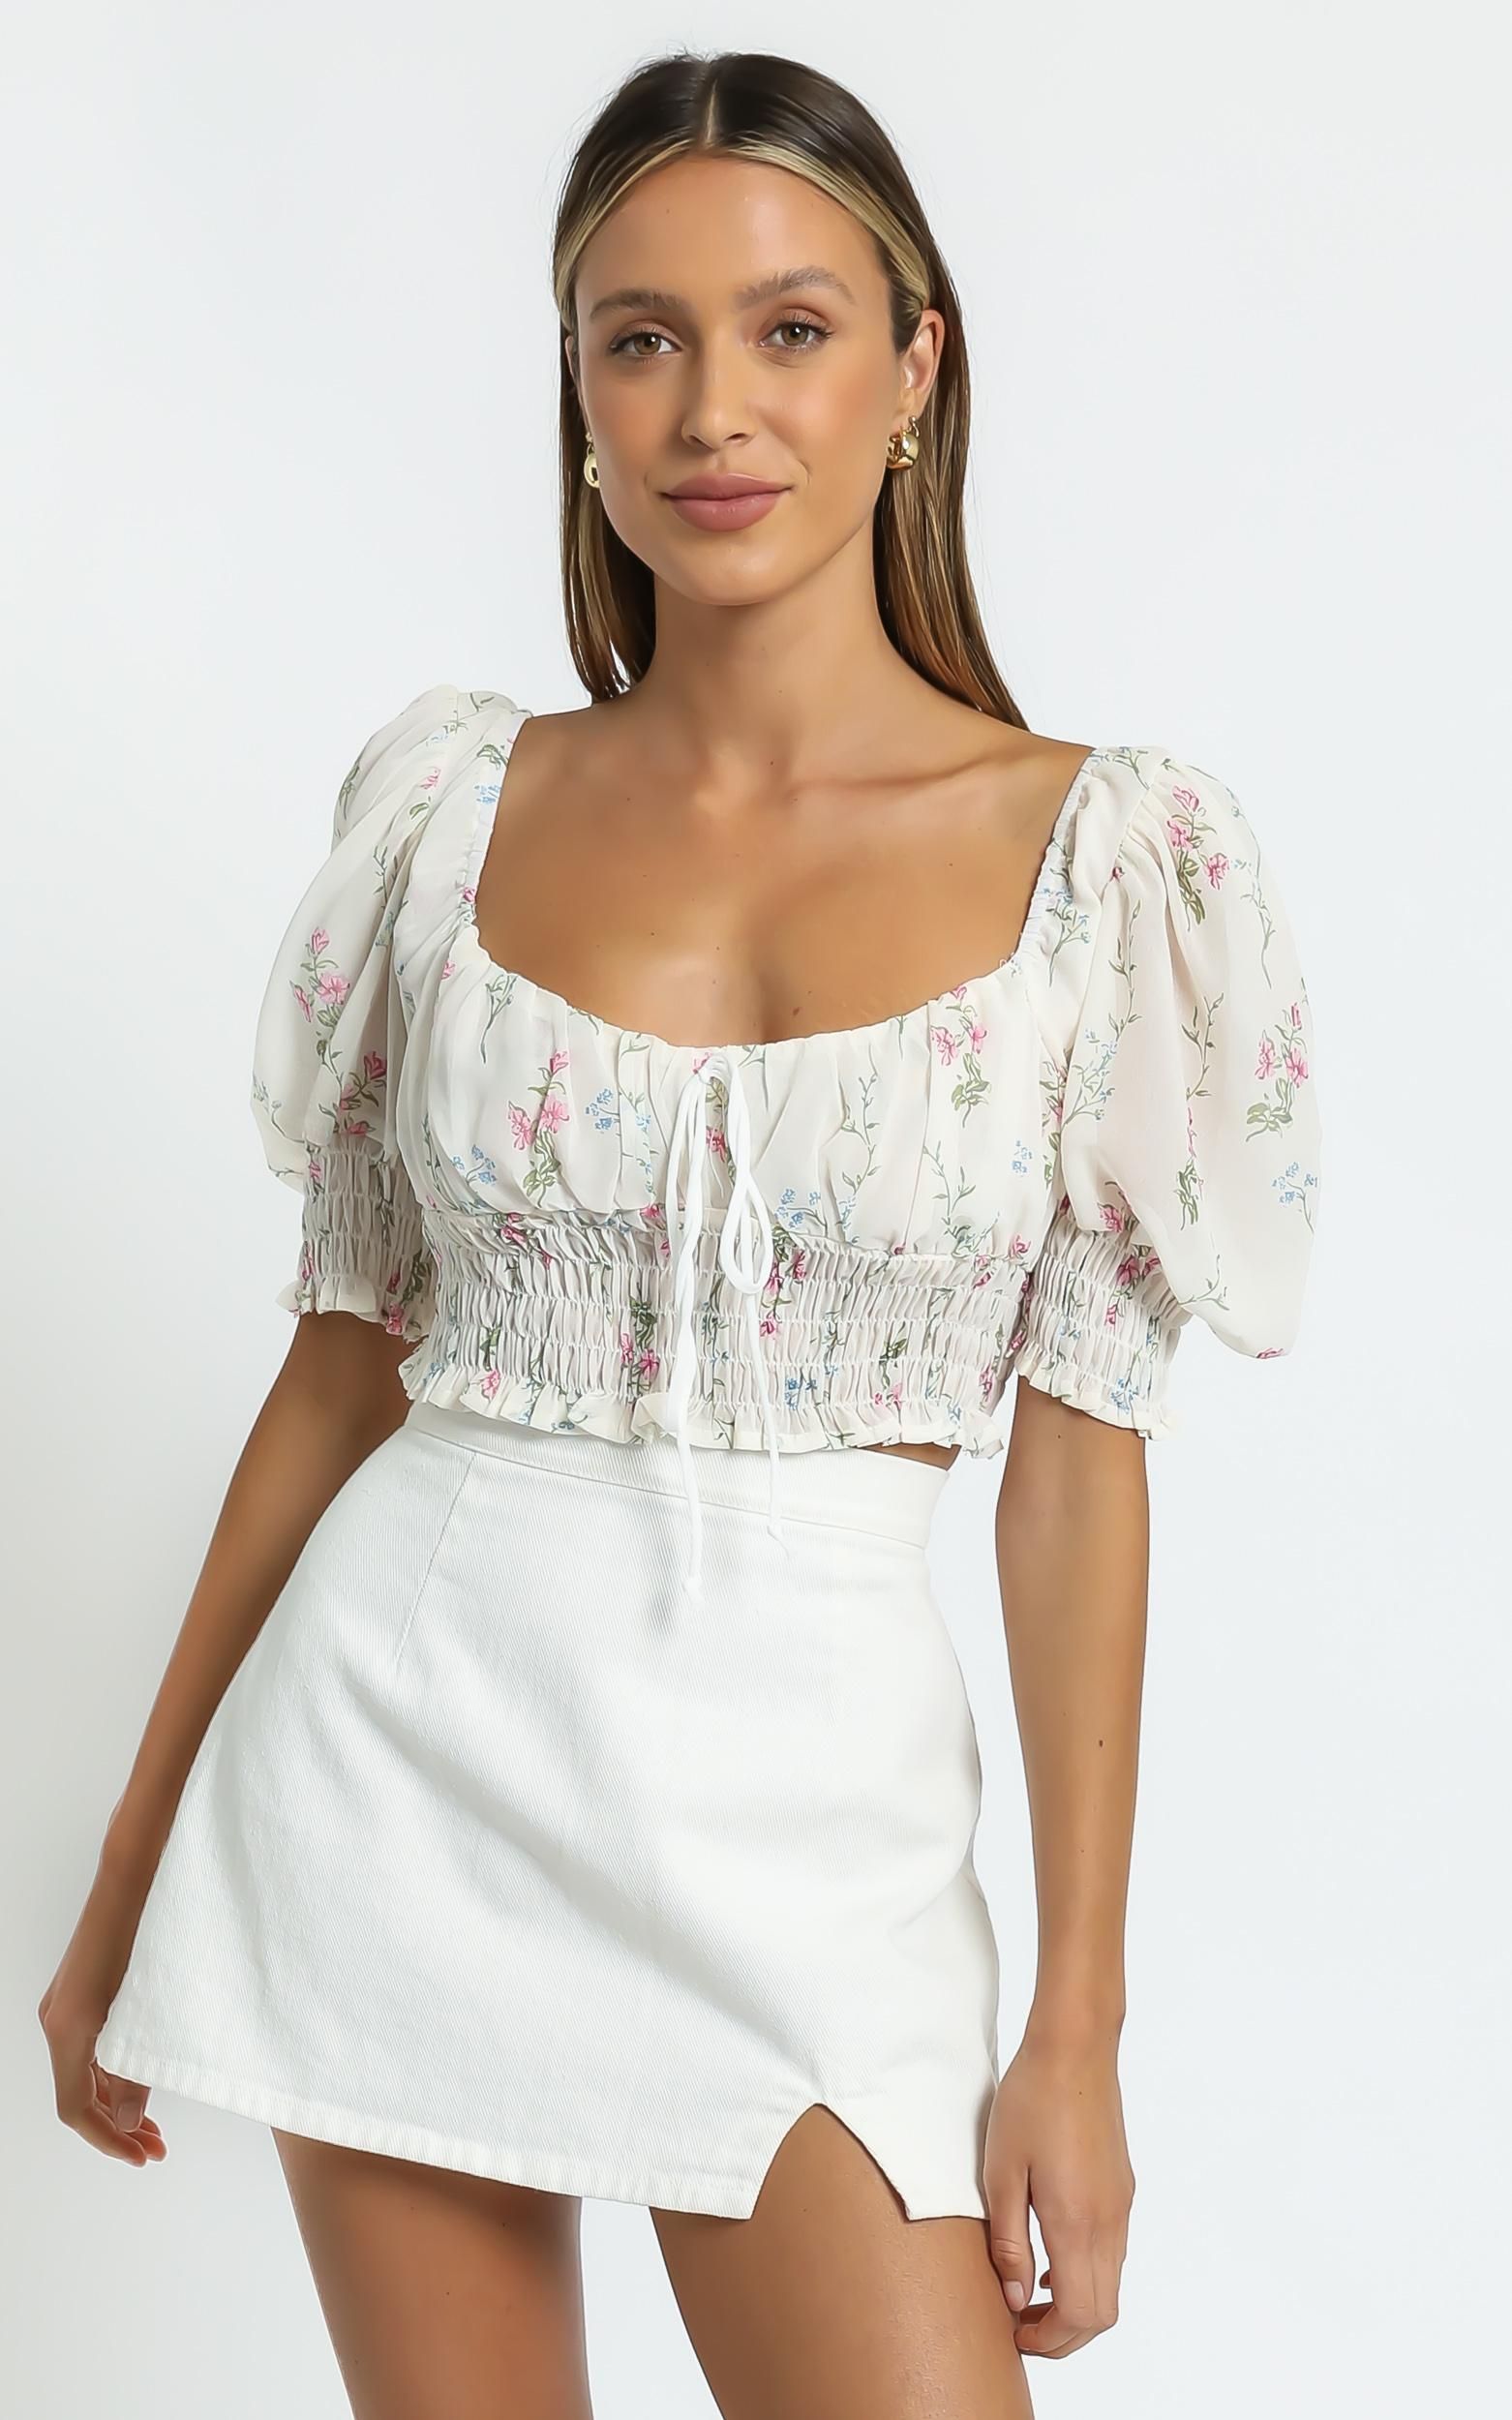 Esperanza Top in White Floral - 8 (S), White, hi-res image number null